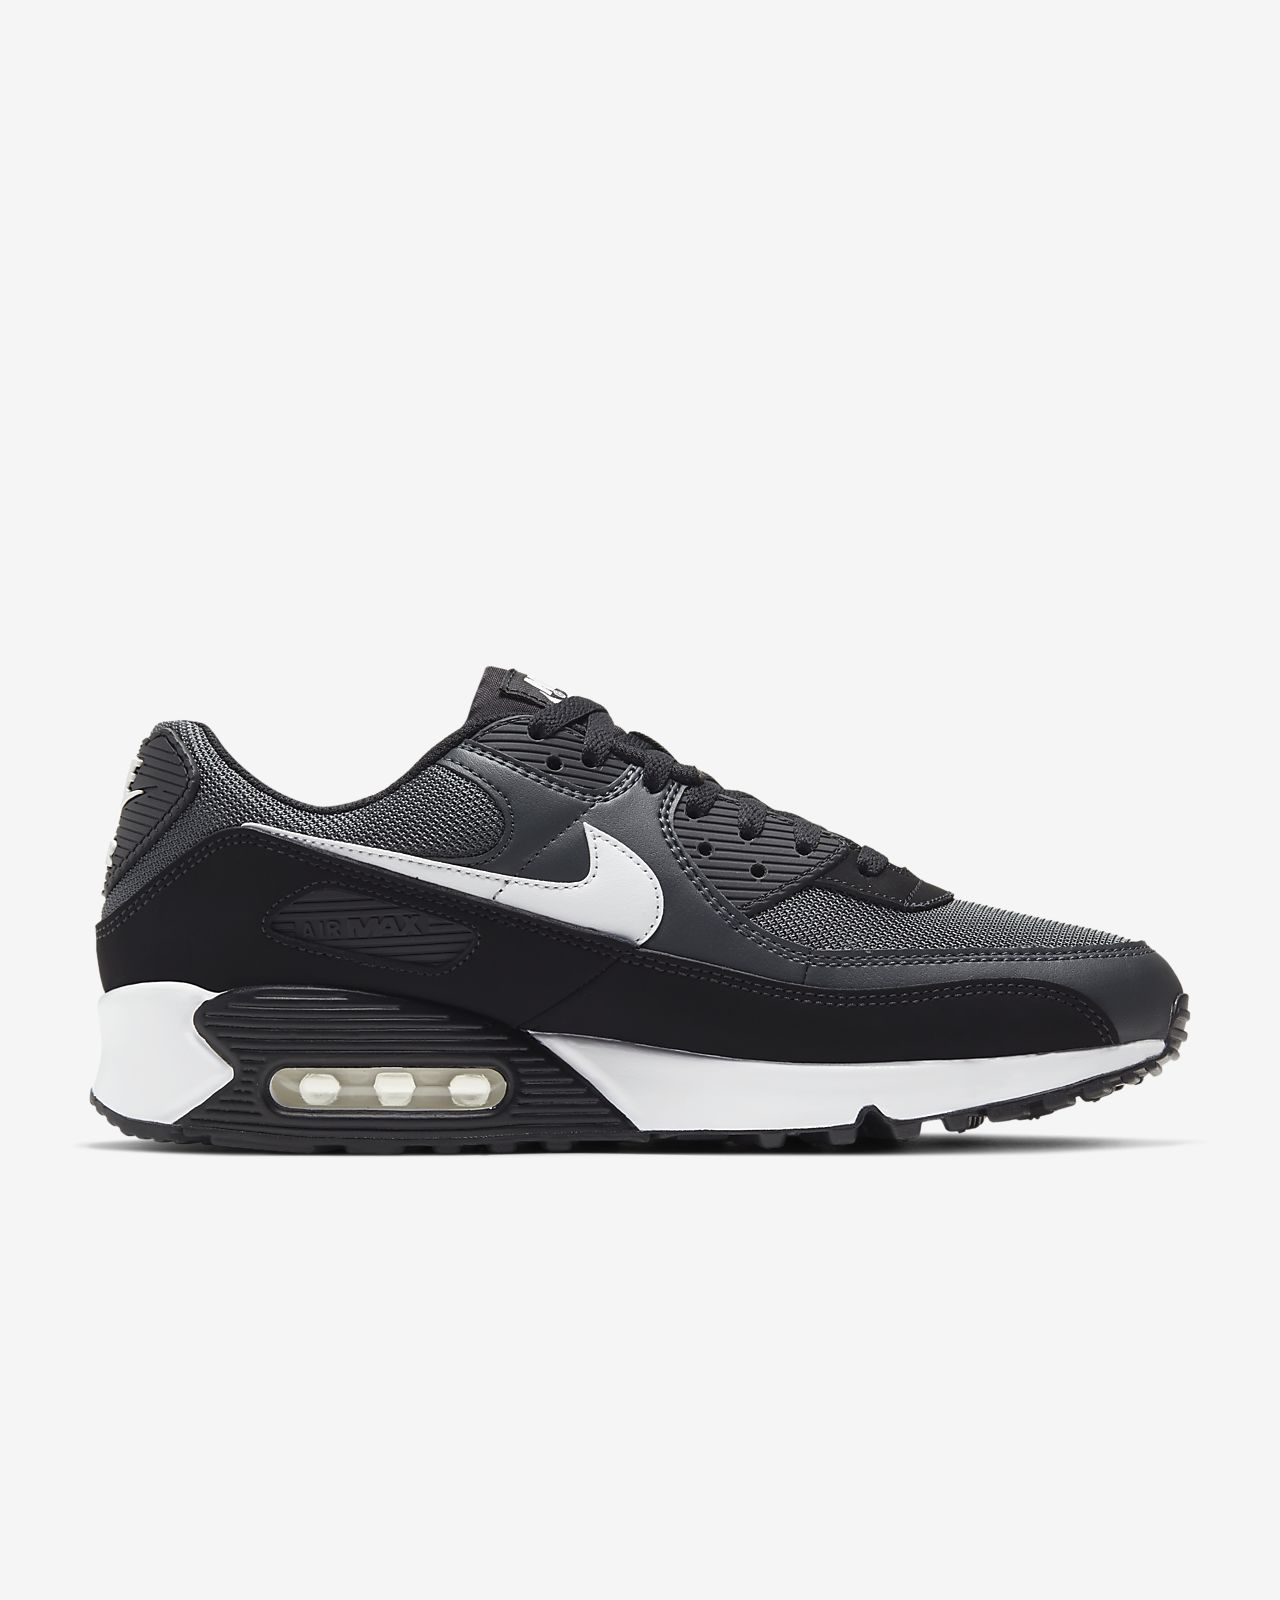 Air Max 90 Woven Nike Men's Running Shoes